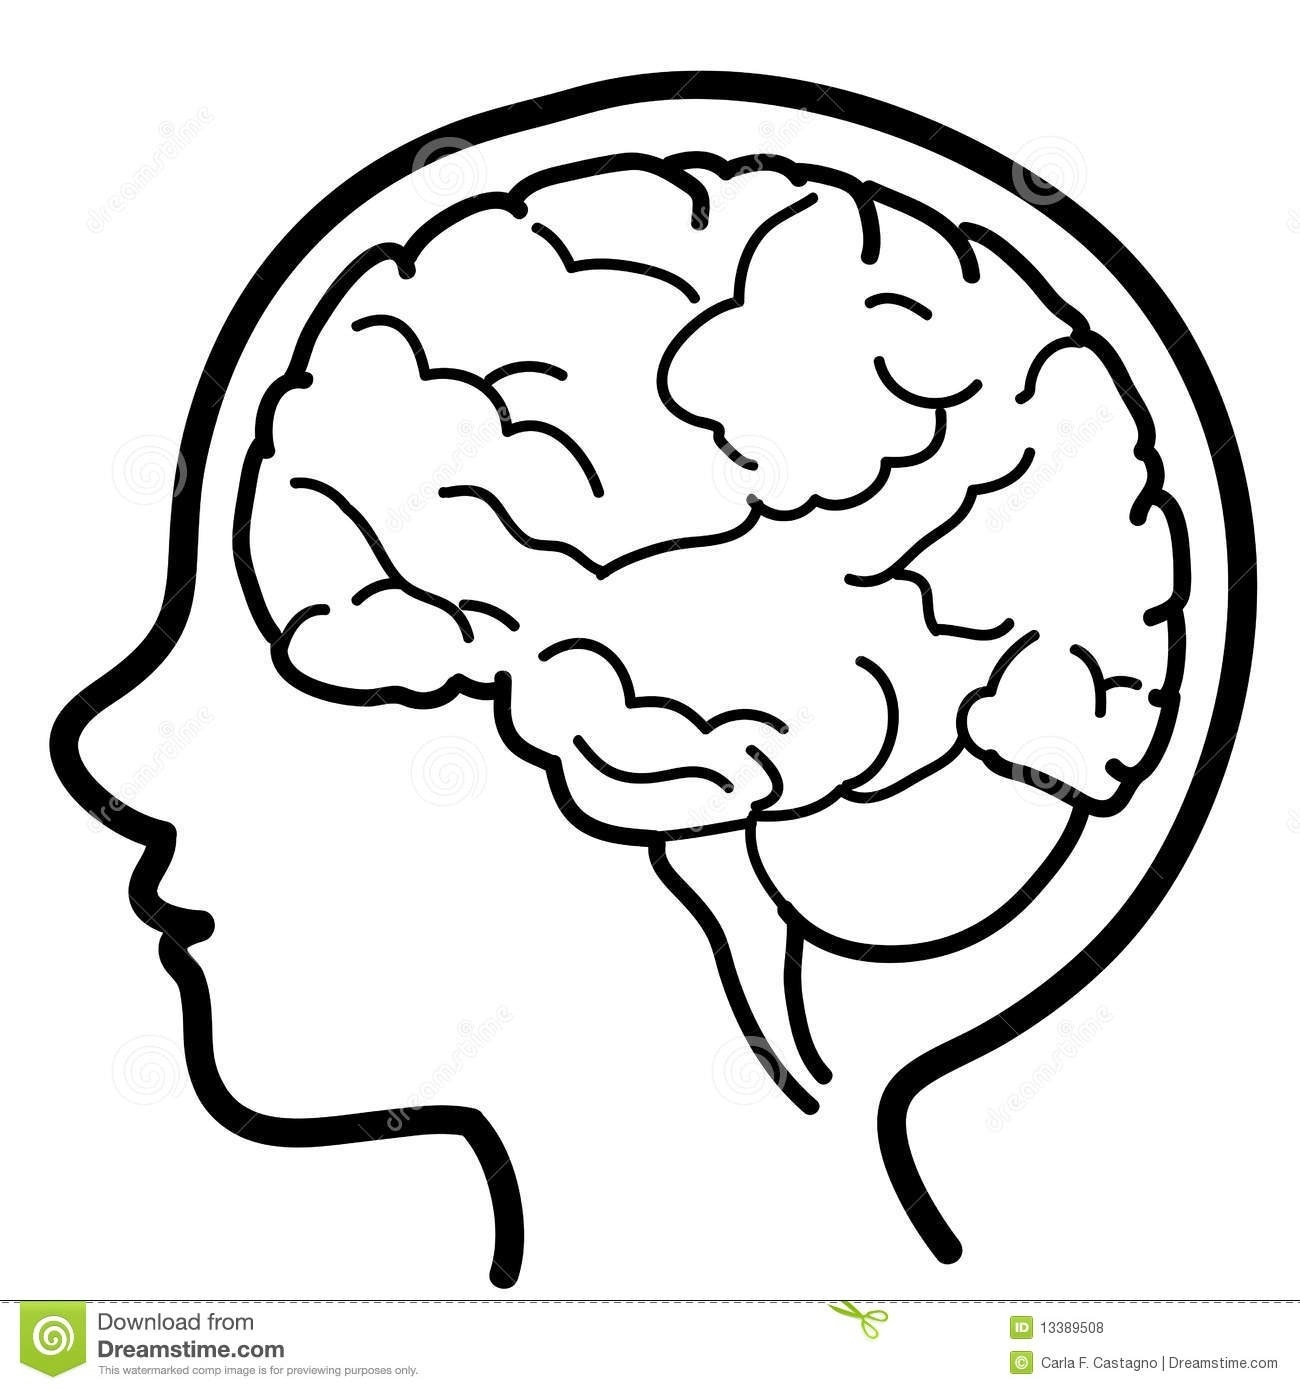 Brain clipart black and white. Letters thinking hd within